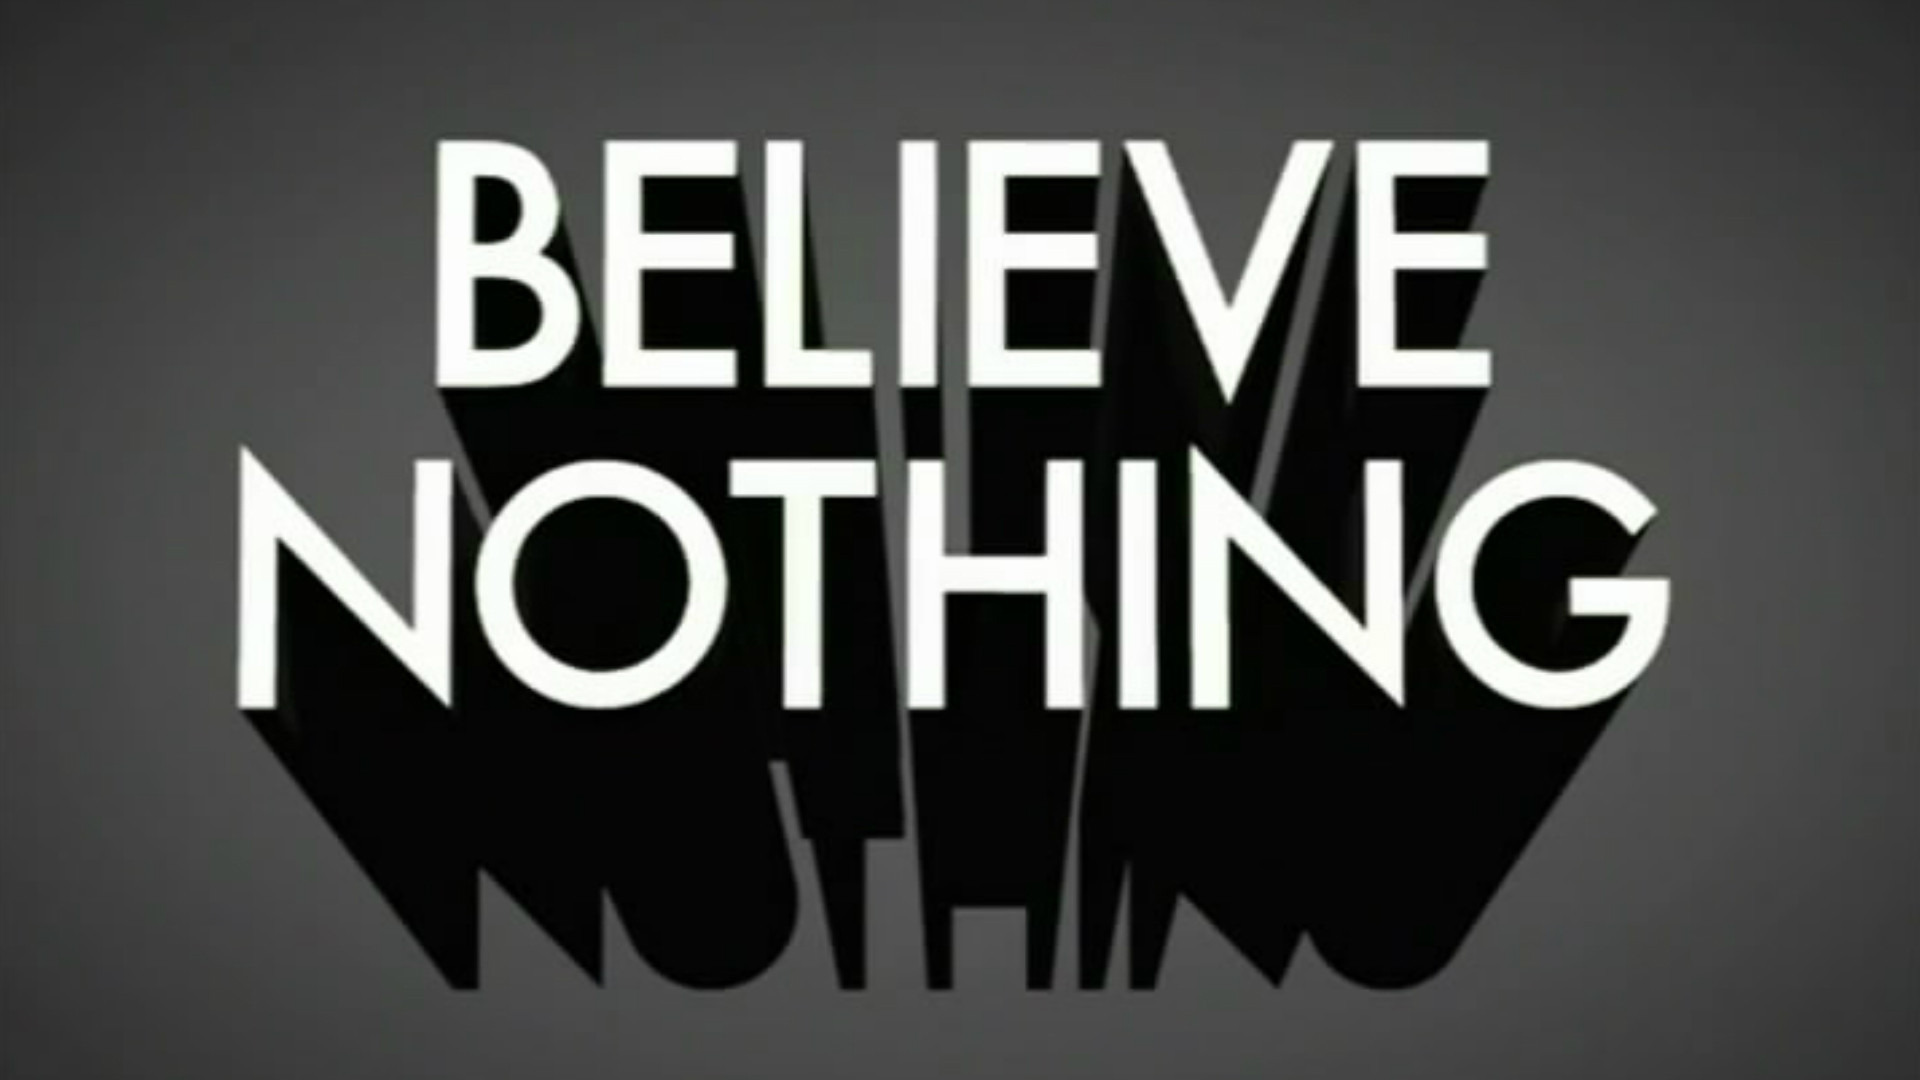 Show Believe Nothing